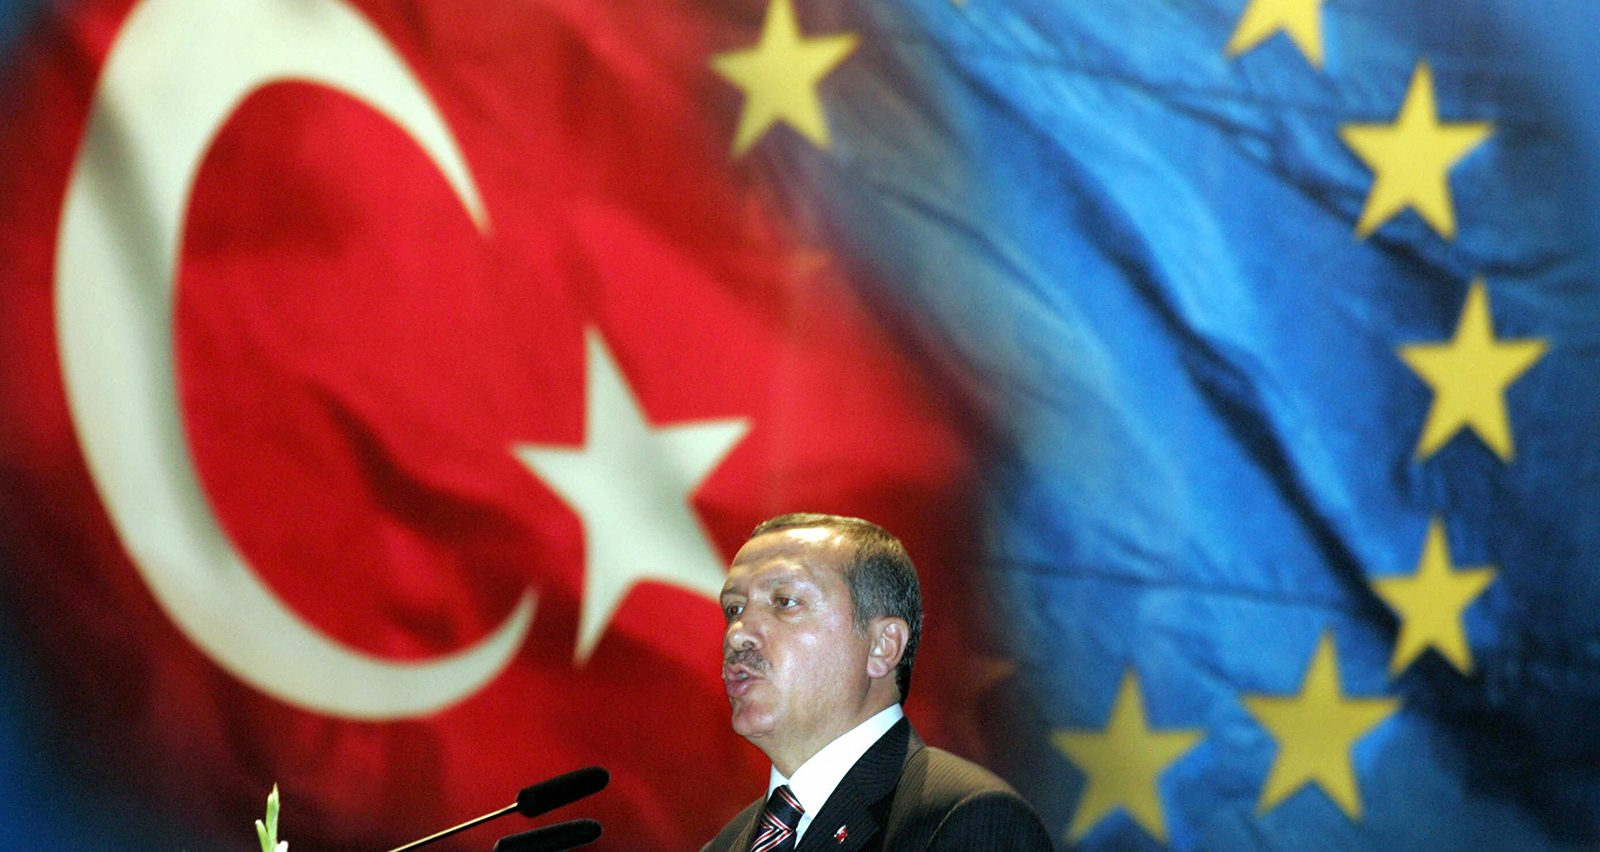 ISTANBUL, Turkey:  Turkish Prime Minister Recep Tayyip Erdogan delivers a speech in Istanbul on 12 October 2005 during the visit of German Chancellor Gerhard Schroeder. Their talks were expected to focus on bilateral issues but also on the start of Turkey's membership negotiations with the European Union.    AFP PHOTO    DDP/MARCUS BRANDT  (Photo credit should read MARCUS BRANDT/AFP/Getty Images)